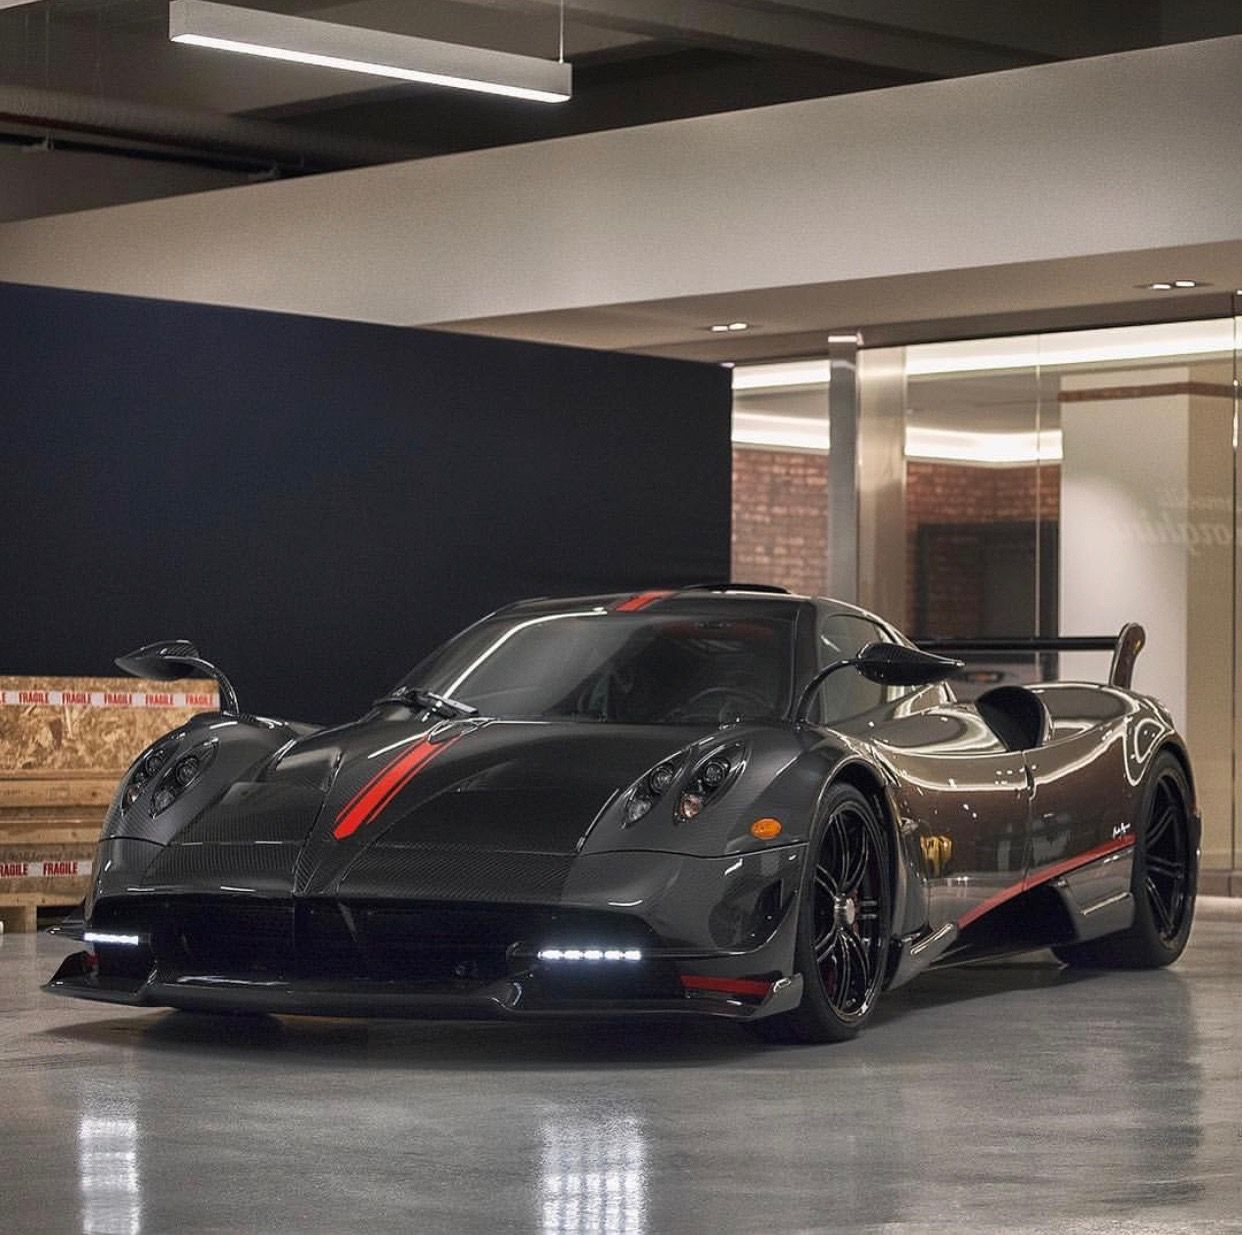 pagani huayra bc i'm fully exposed black & gray carbon fiber w/ red